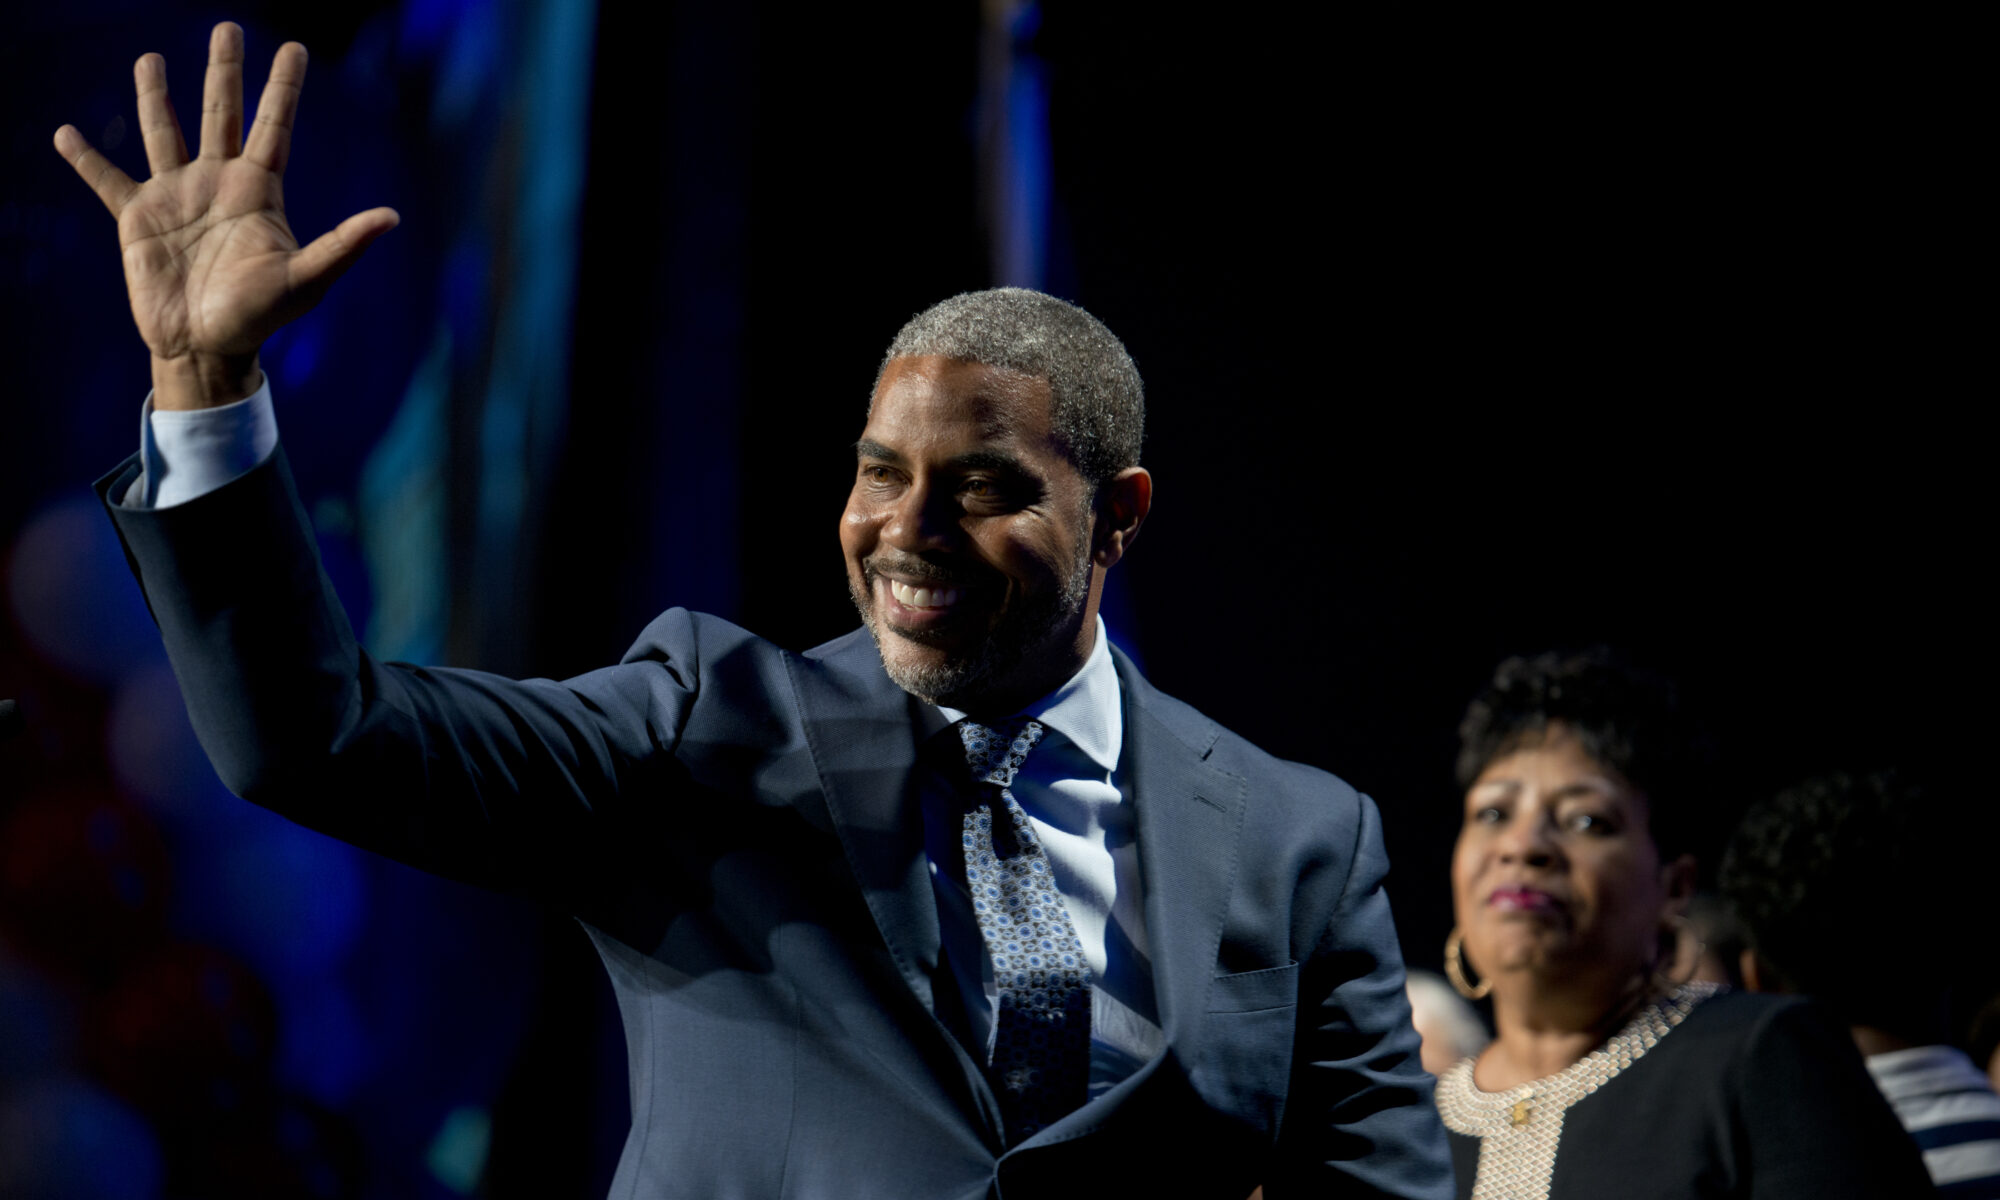 Steven Horsford waiving to a crowd